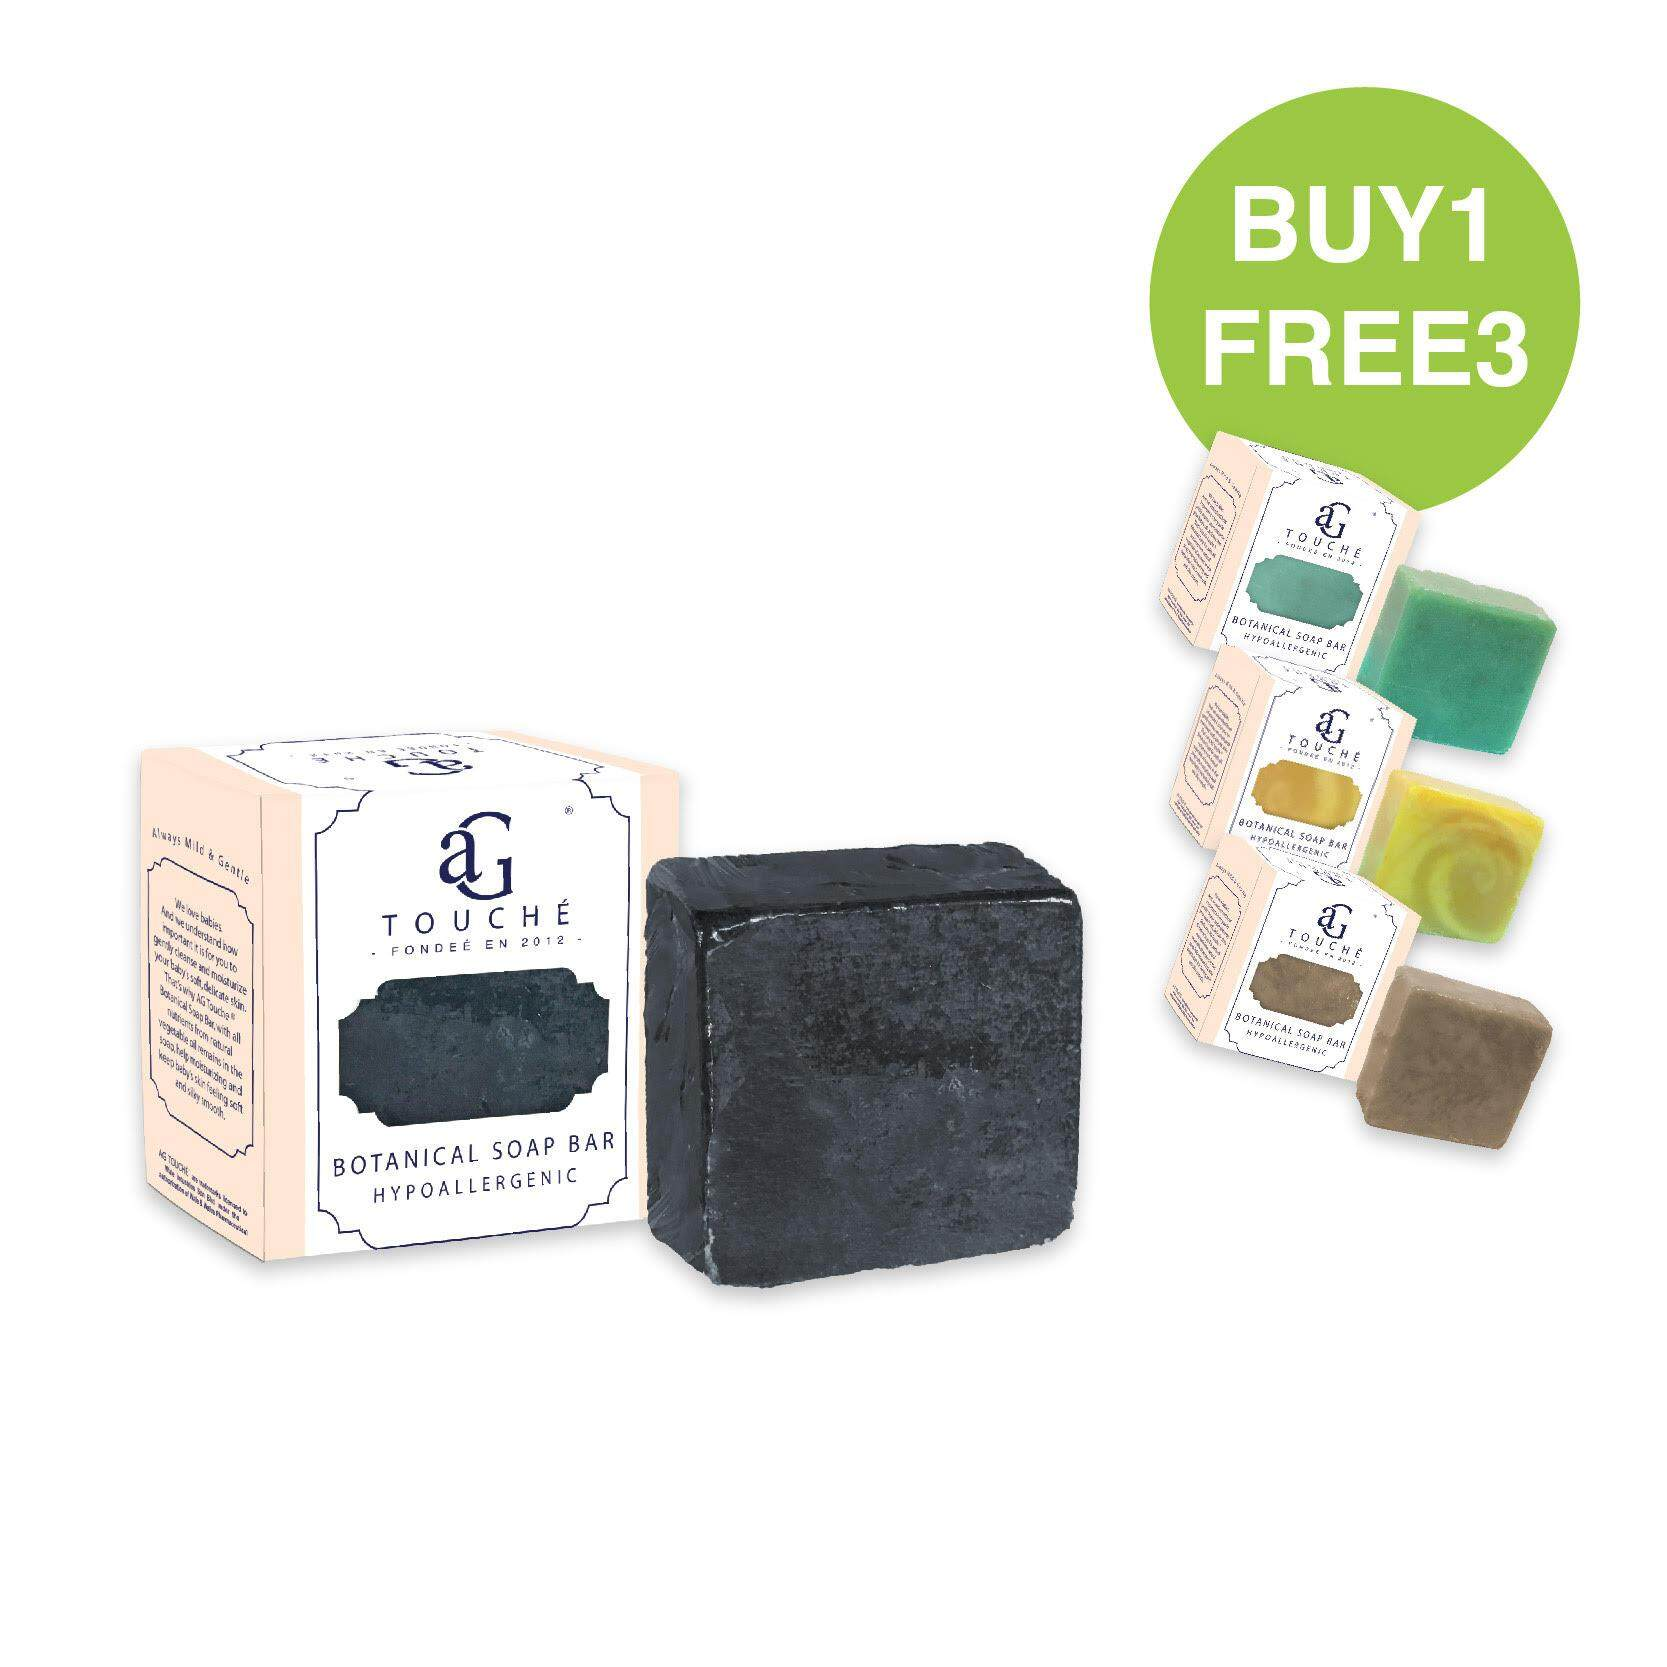 AG Touché Botanical Baby Soap Bar Bamboo Charcoal (80g) [Buy 1 FREE 3]